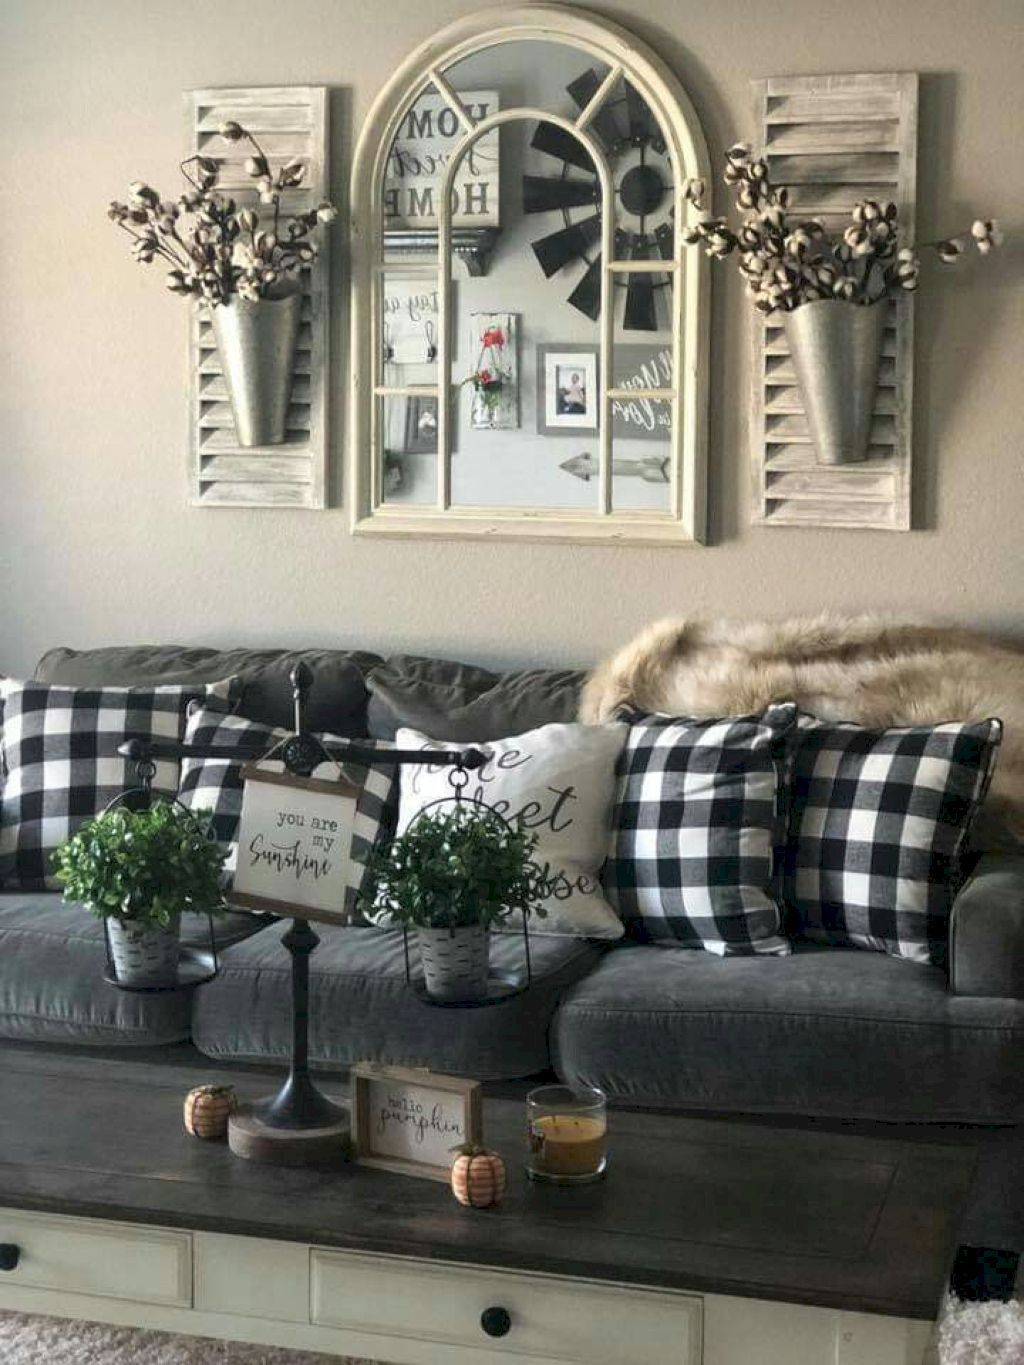 30 Rustic Farmhouse Living Room Design And Decor Ideas For Your Home Homedeco In 2020 Farmhouse Decor Living Room Wall Decor Living Room Rustic Farm House Living Room